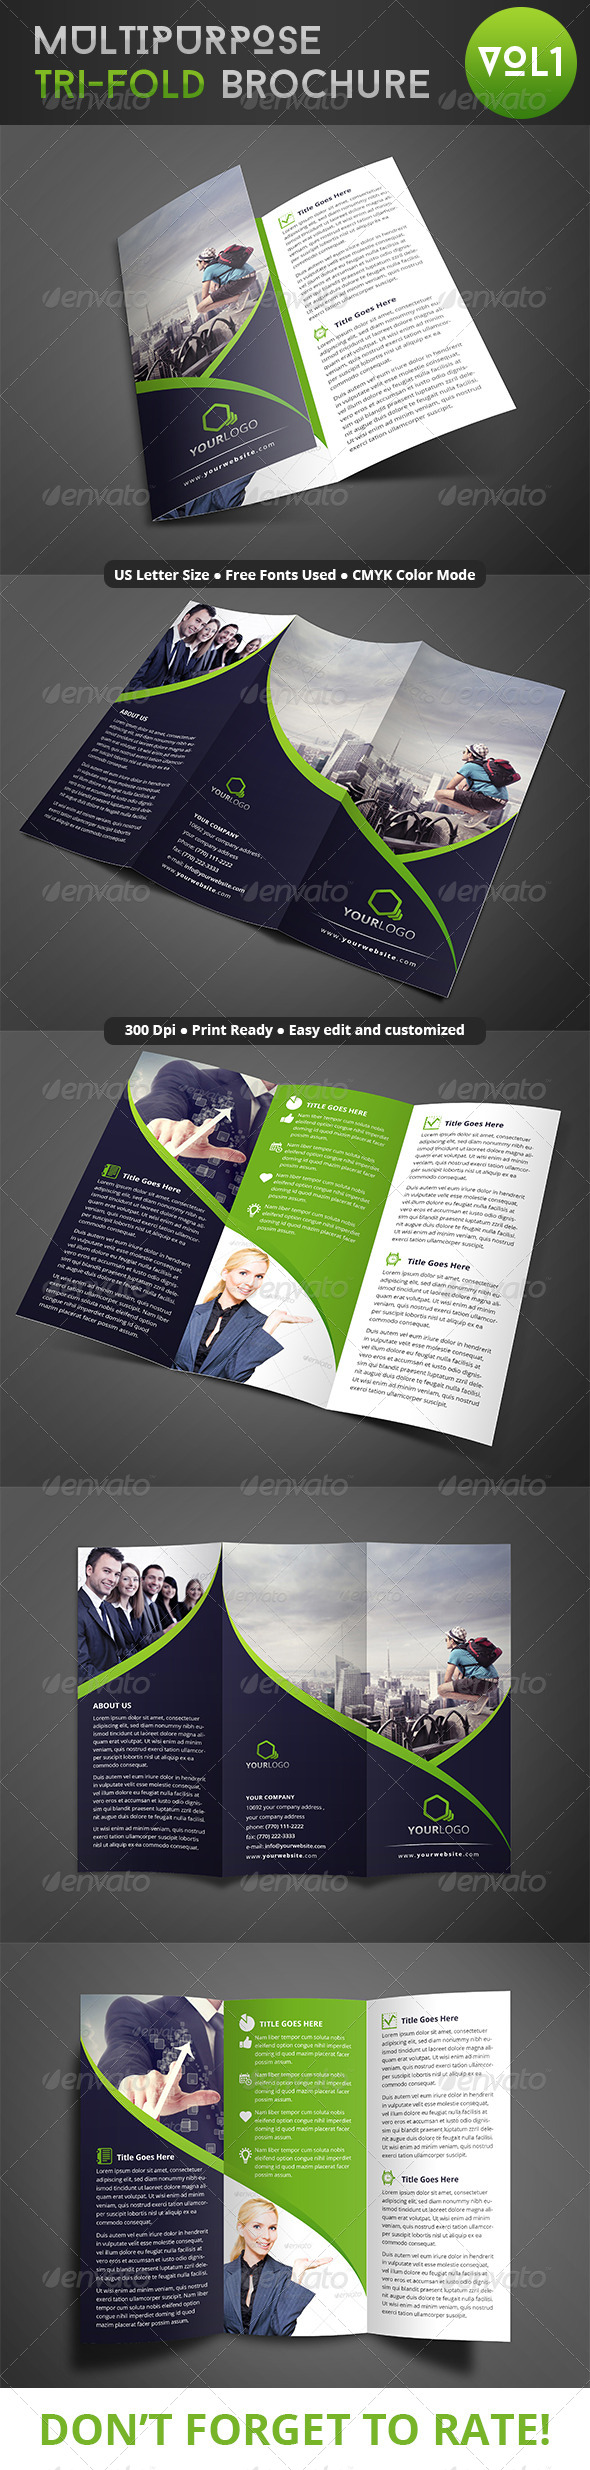 Multipurpose Trifold Brochure  Brochures Corporate Design And